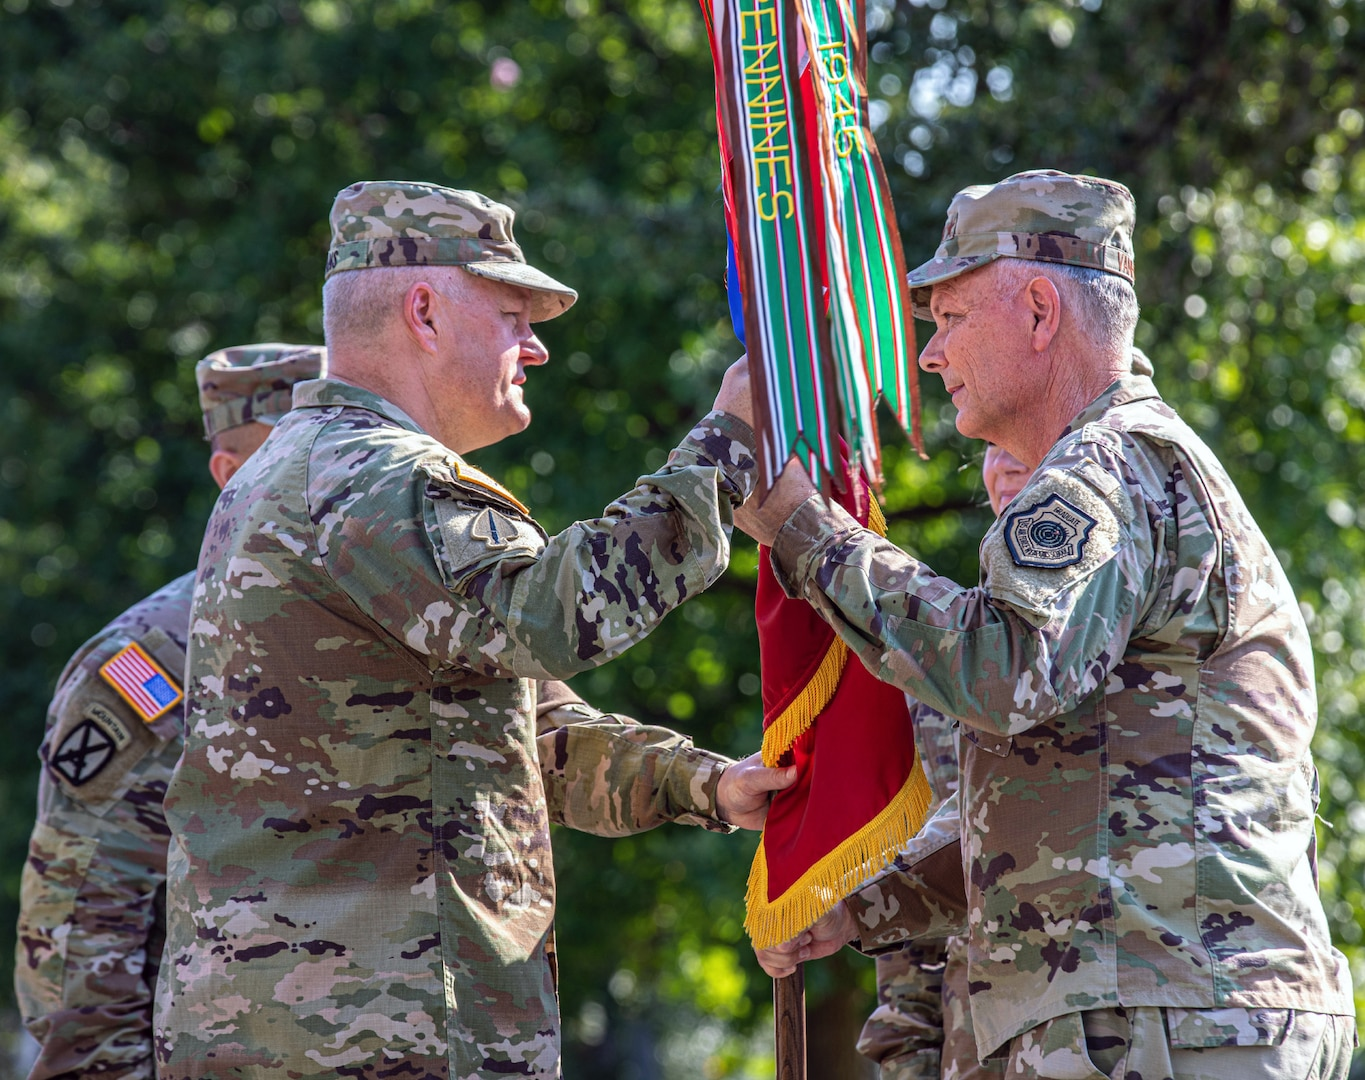 Gen. Glen D. VanHerck (right), Commander, North American Aerospace Defense Command and United States Northern Command, passes the U.S. Army North colors to Lt. Gen. John R. Evans, Jr.